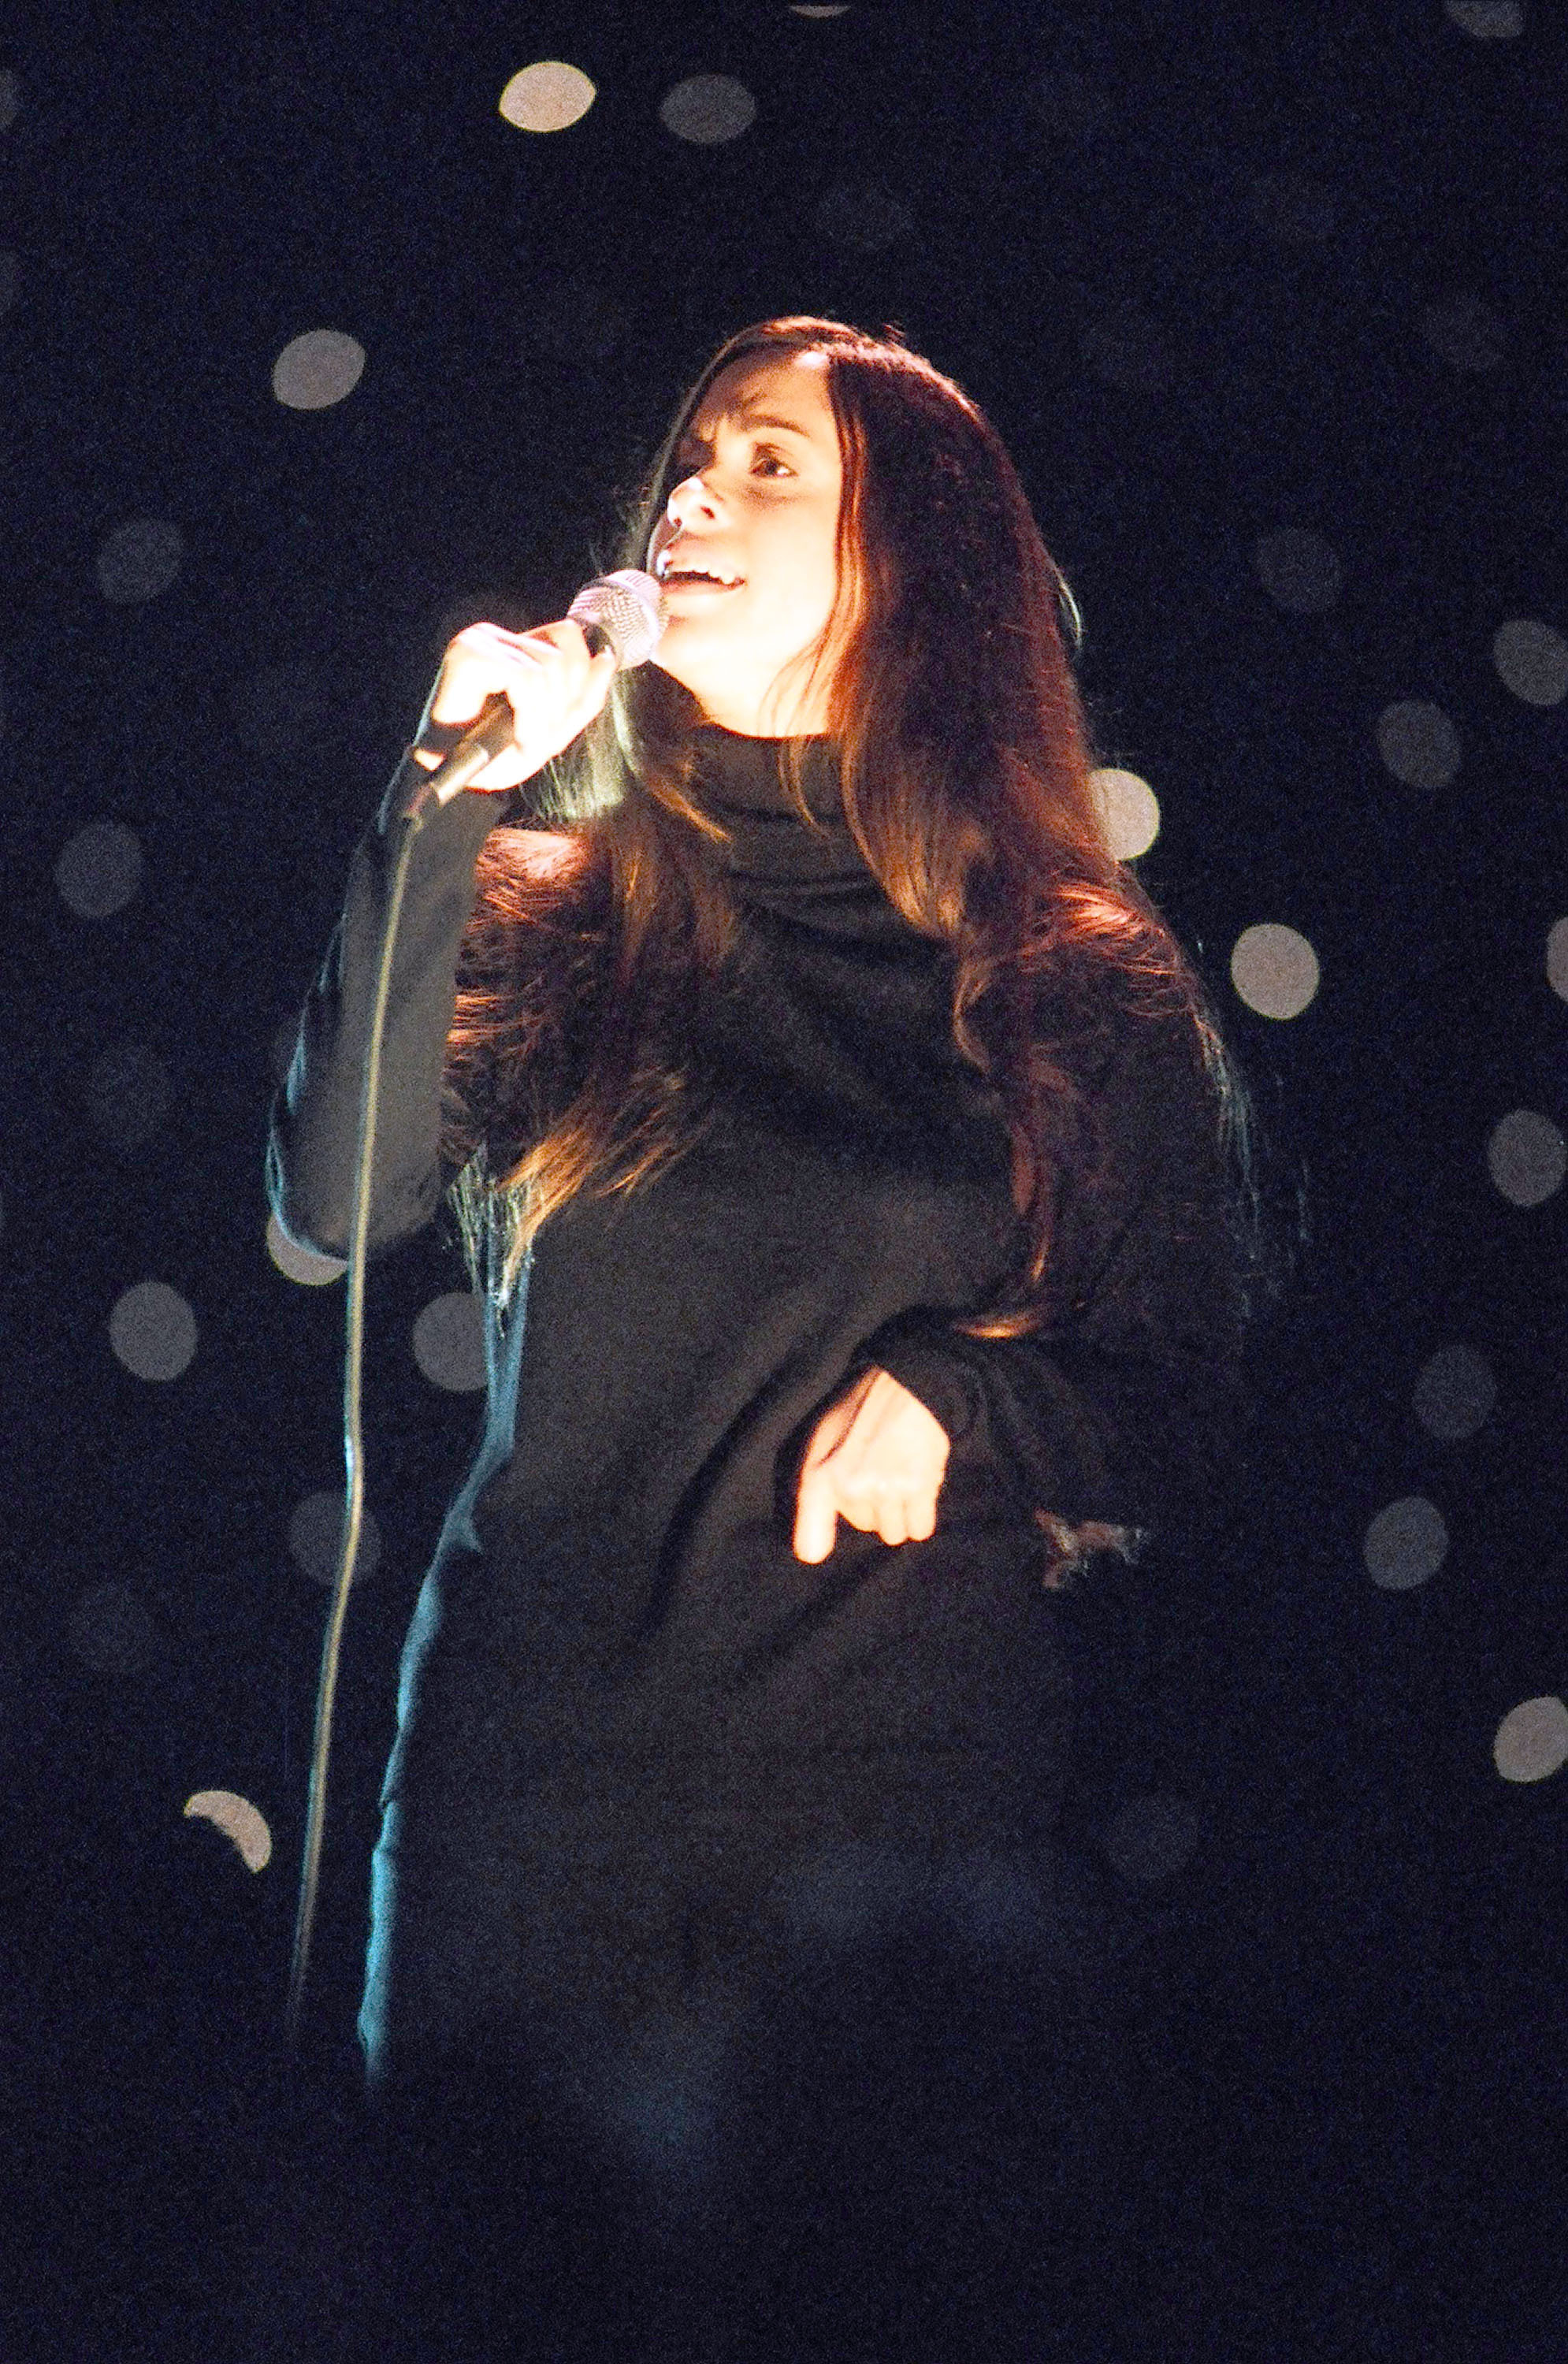 Alanis Morissette performs at the MTV Video Music Awards at Radio City Music Hall in New York City on Sept. 4, 1996.